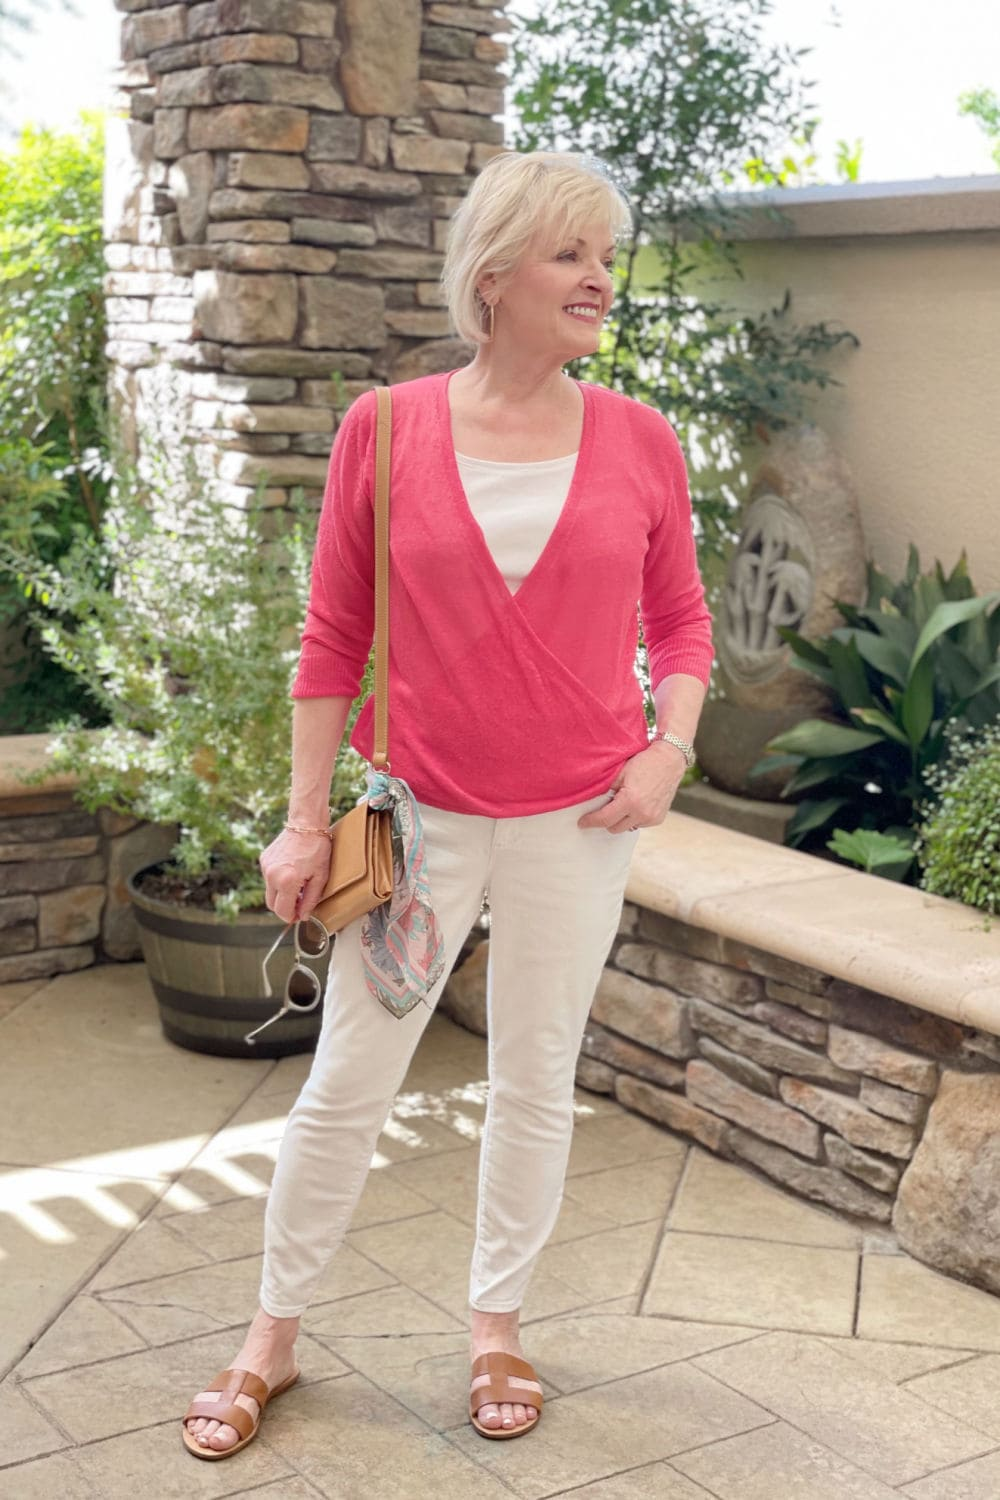 blonde woman wearing white jeans and top with red sweater